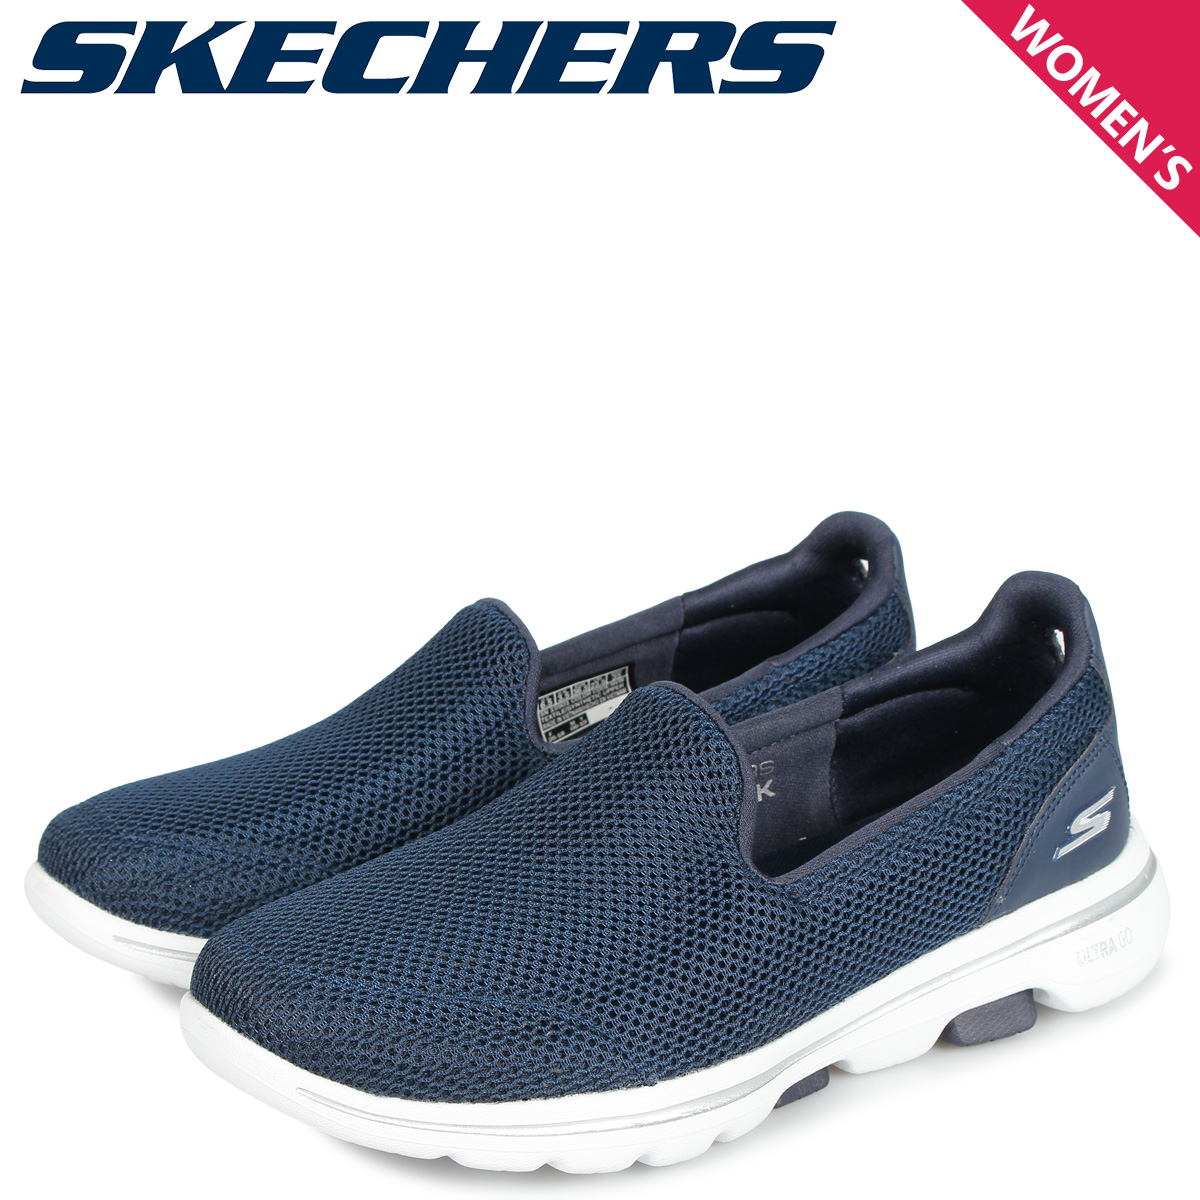 skechers air cooled goga mat shoes price bolivia